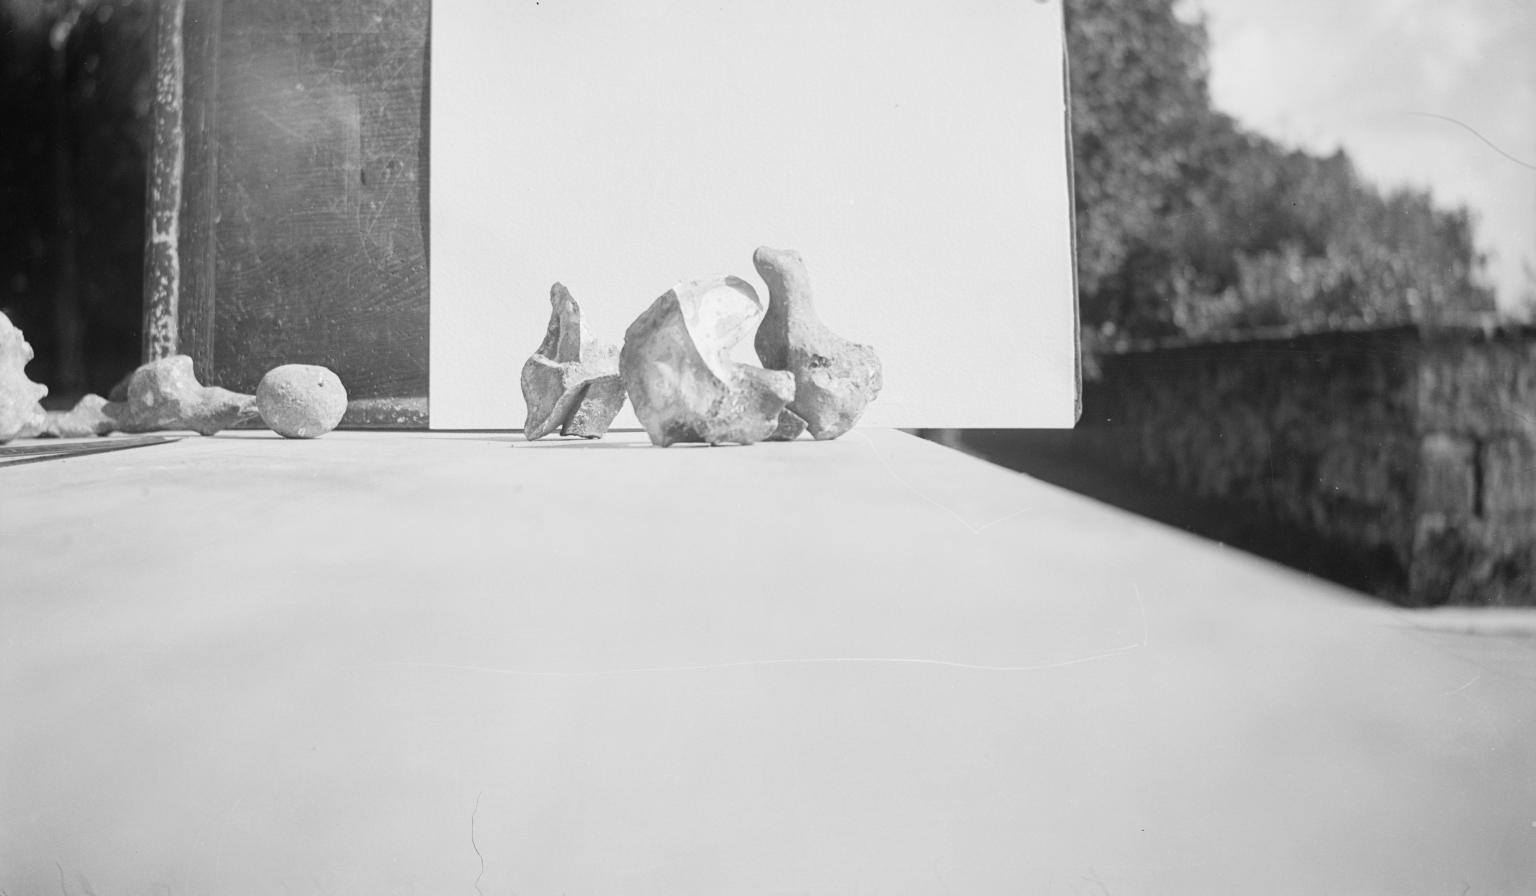 Paul Nash artist photographer nature The Life of the 			Inanimate Object Country Life Tate archiveplatform green1